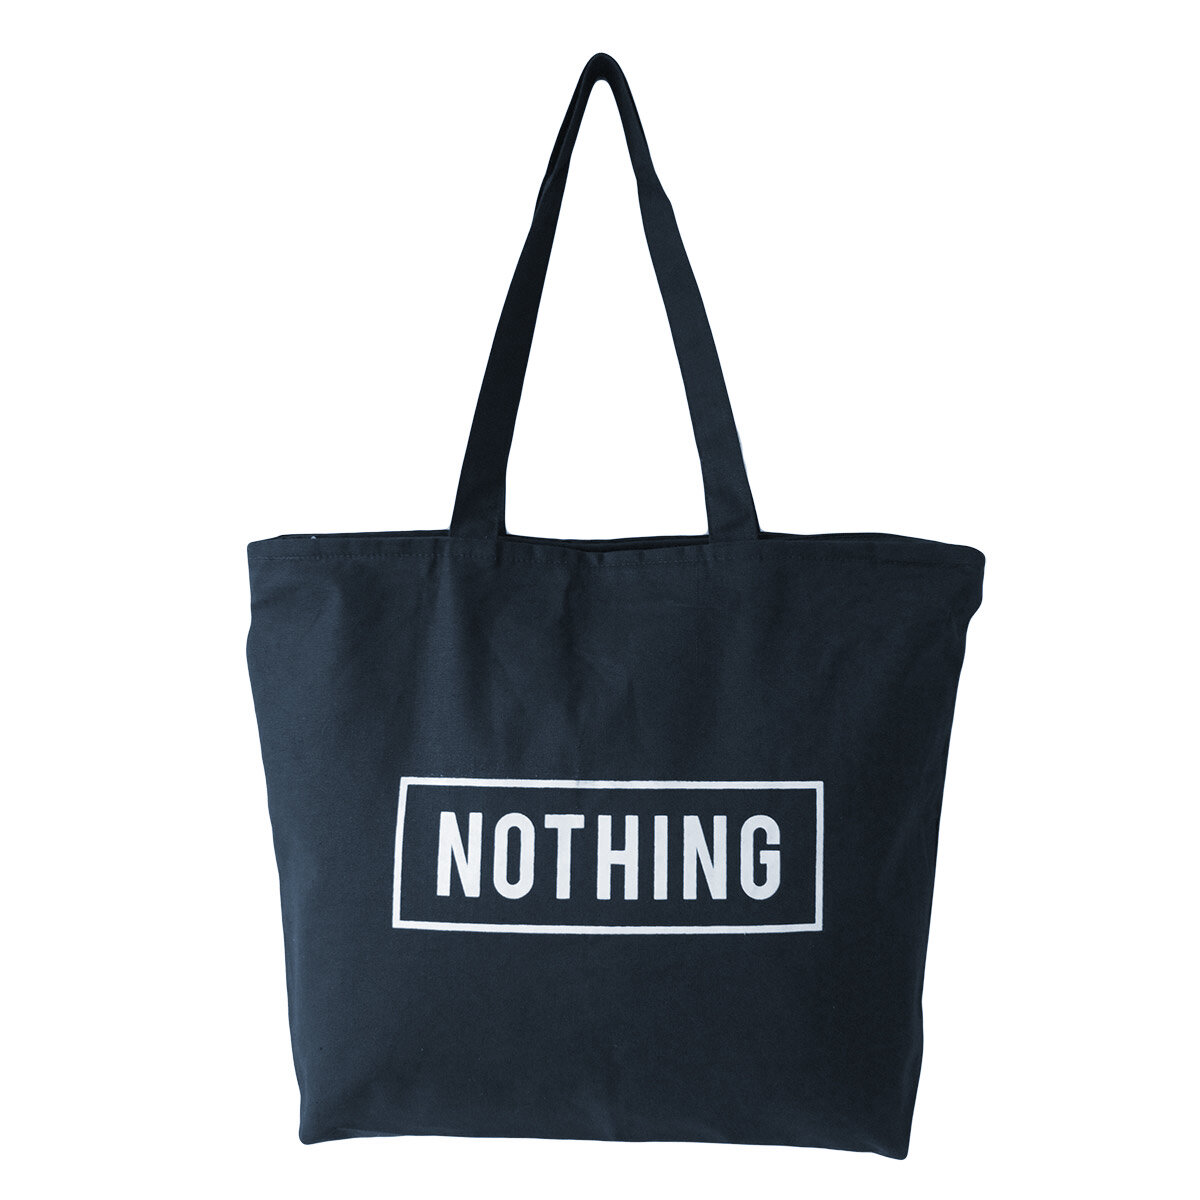 tany-Nothing-Tote-02-cdr.jpg